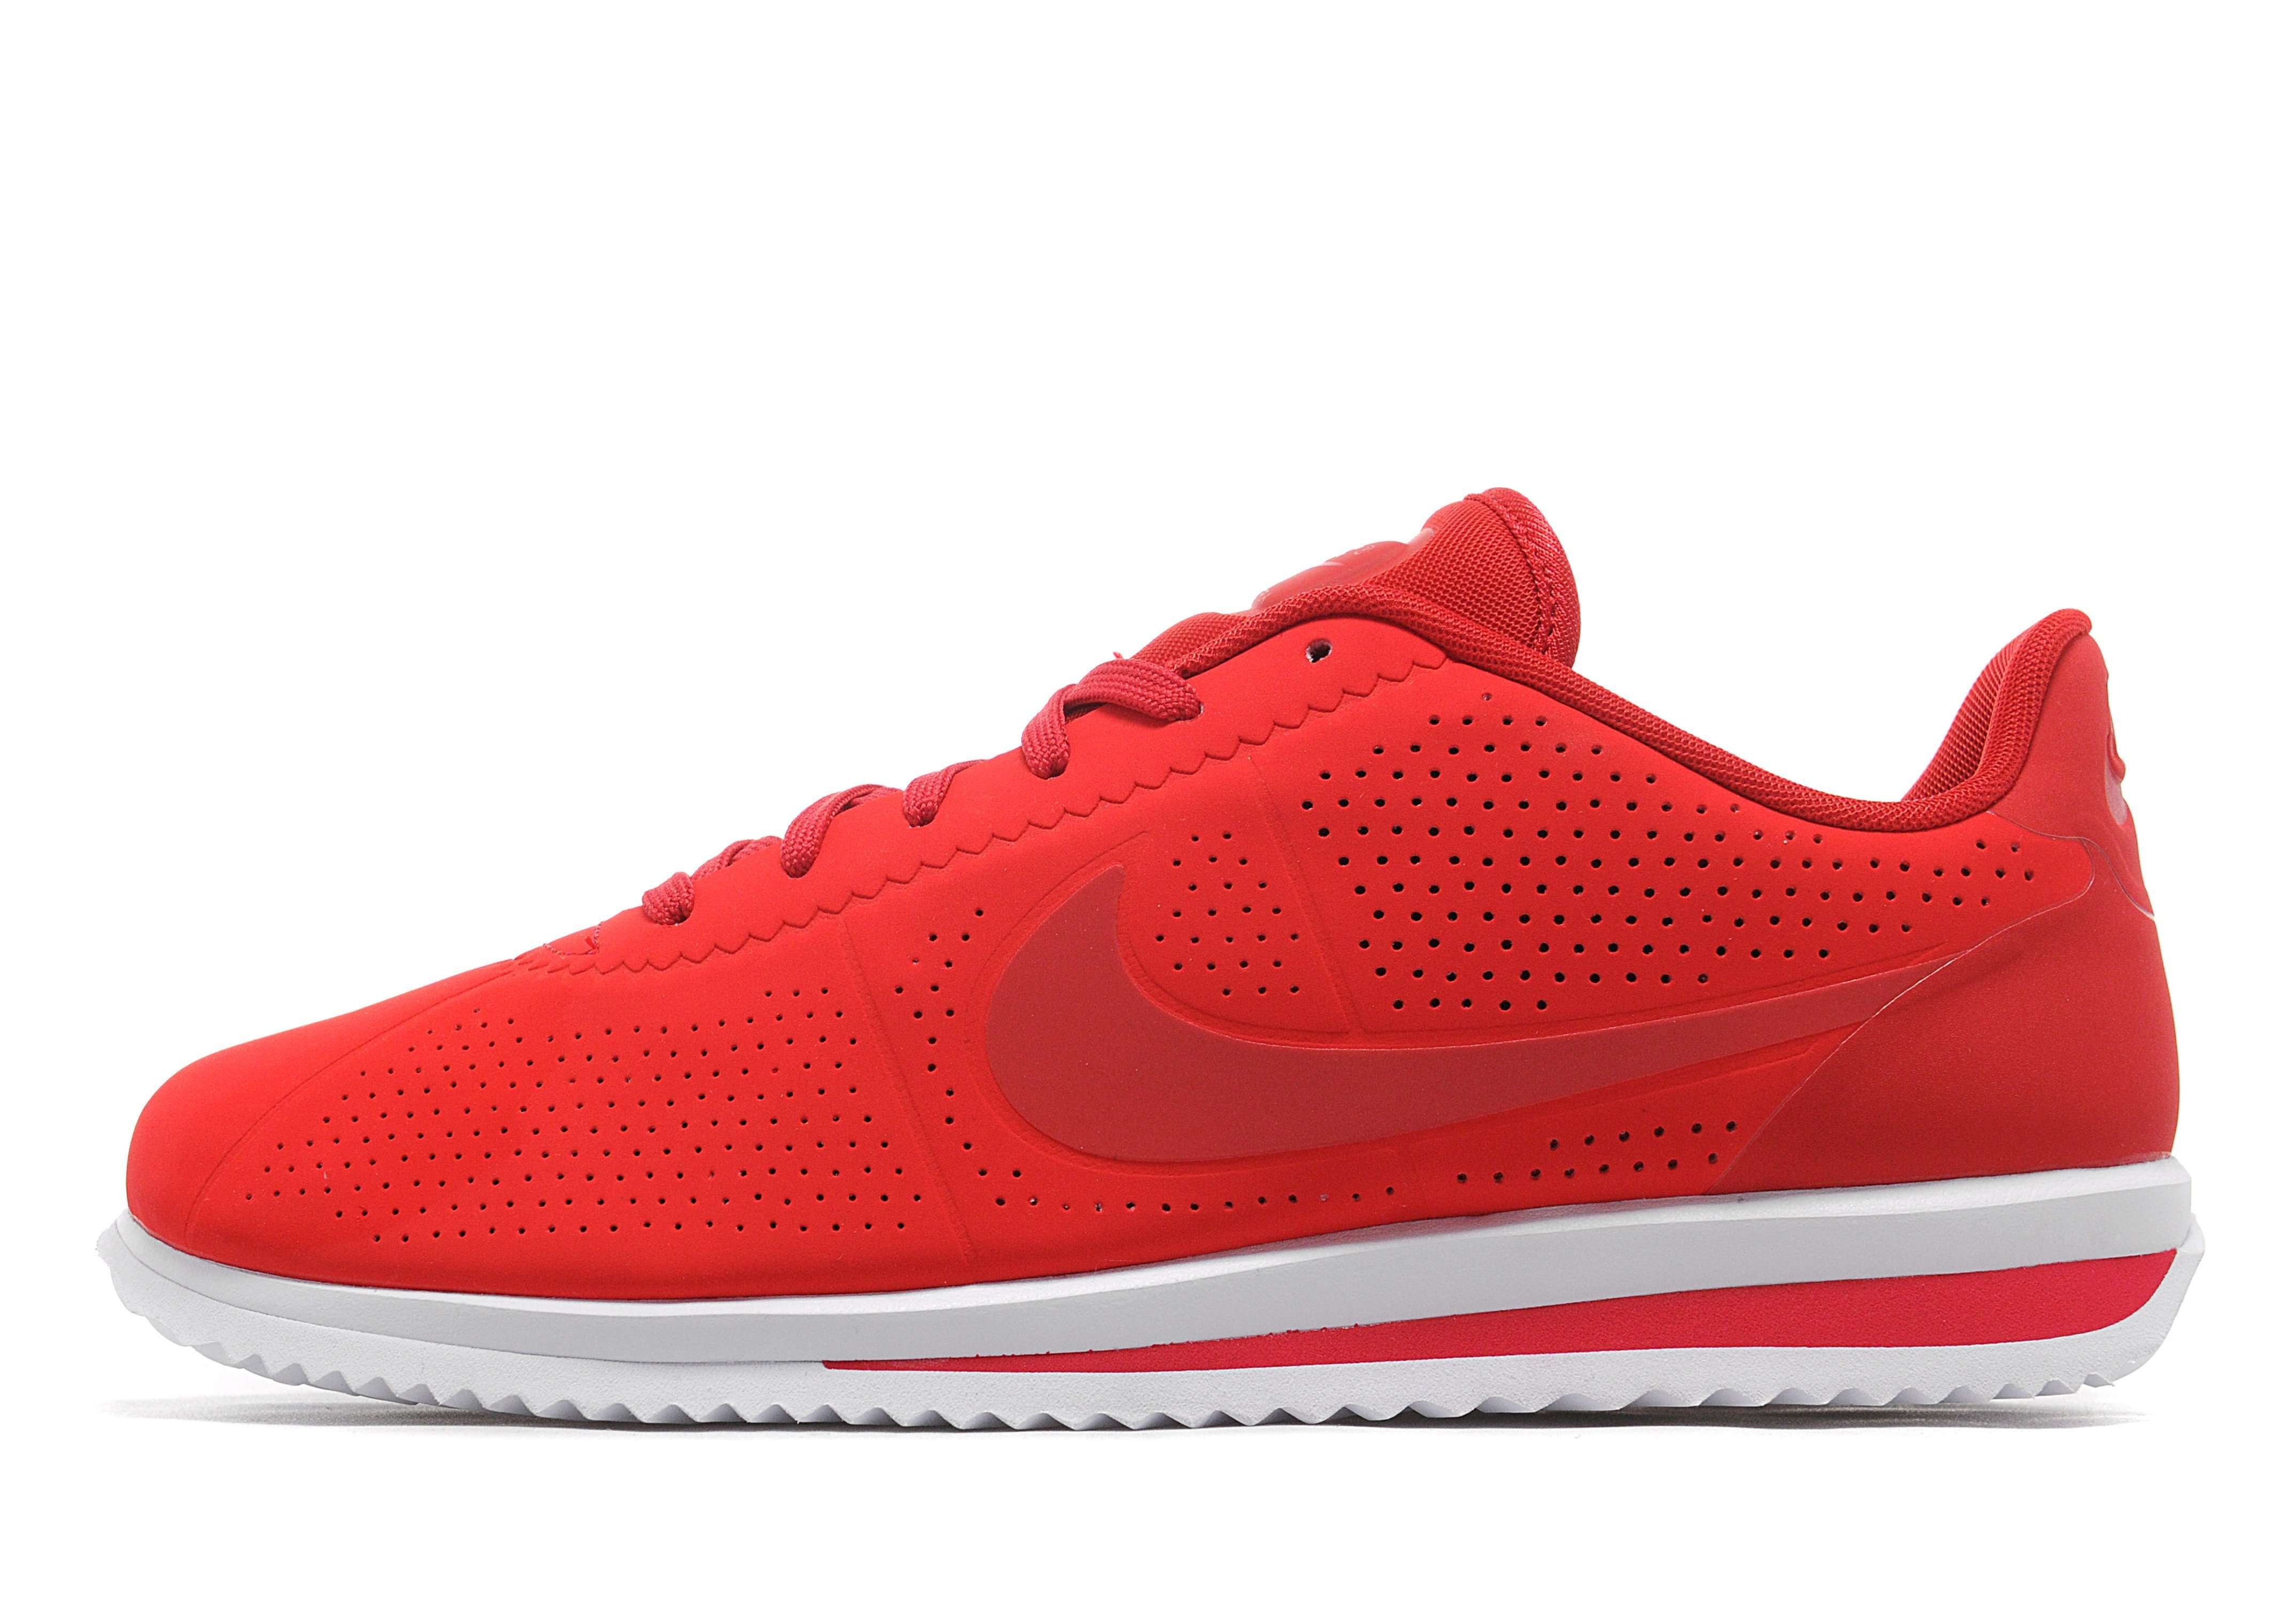 Nike Cortez Ultra Moire with JD Sports